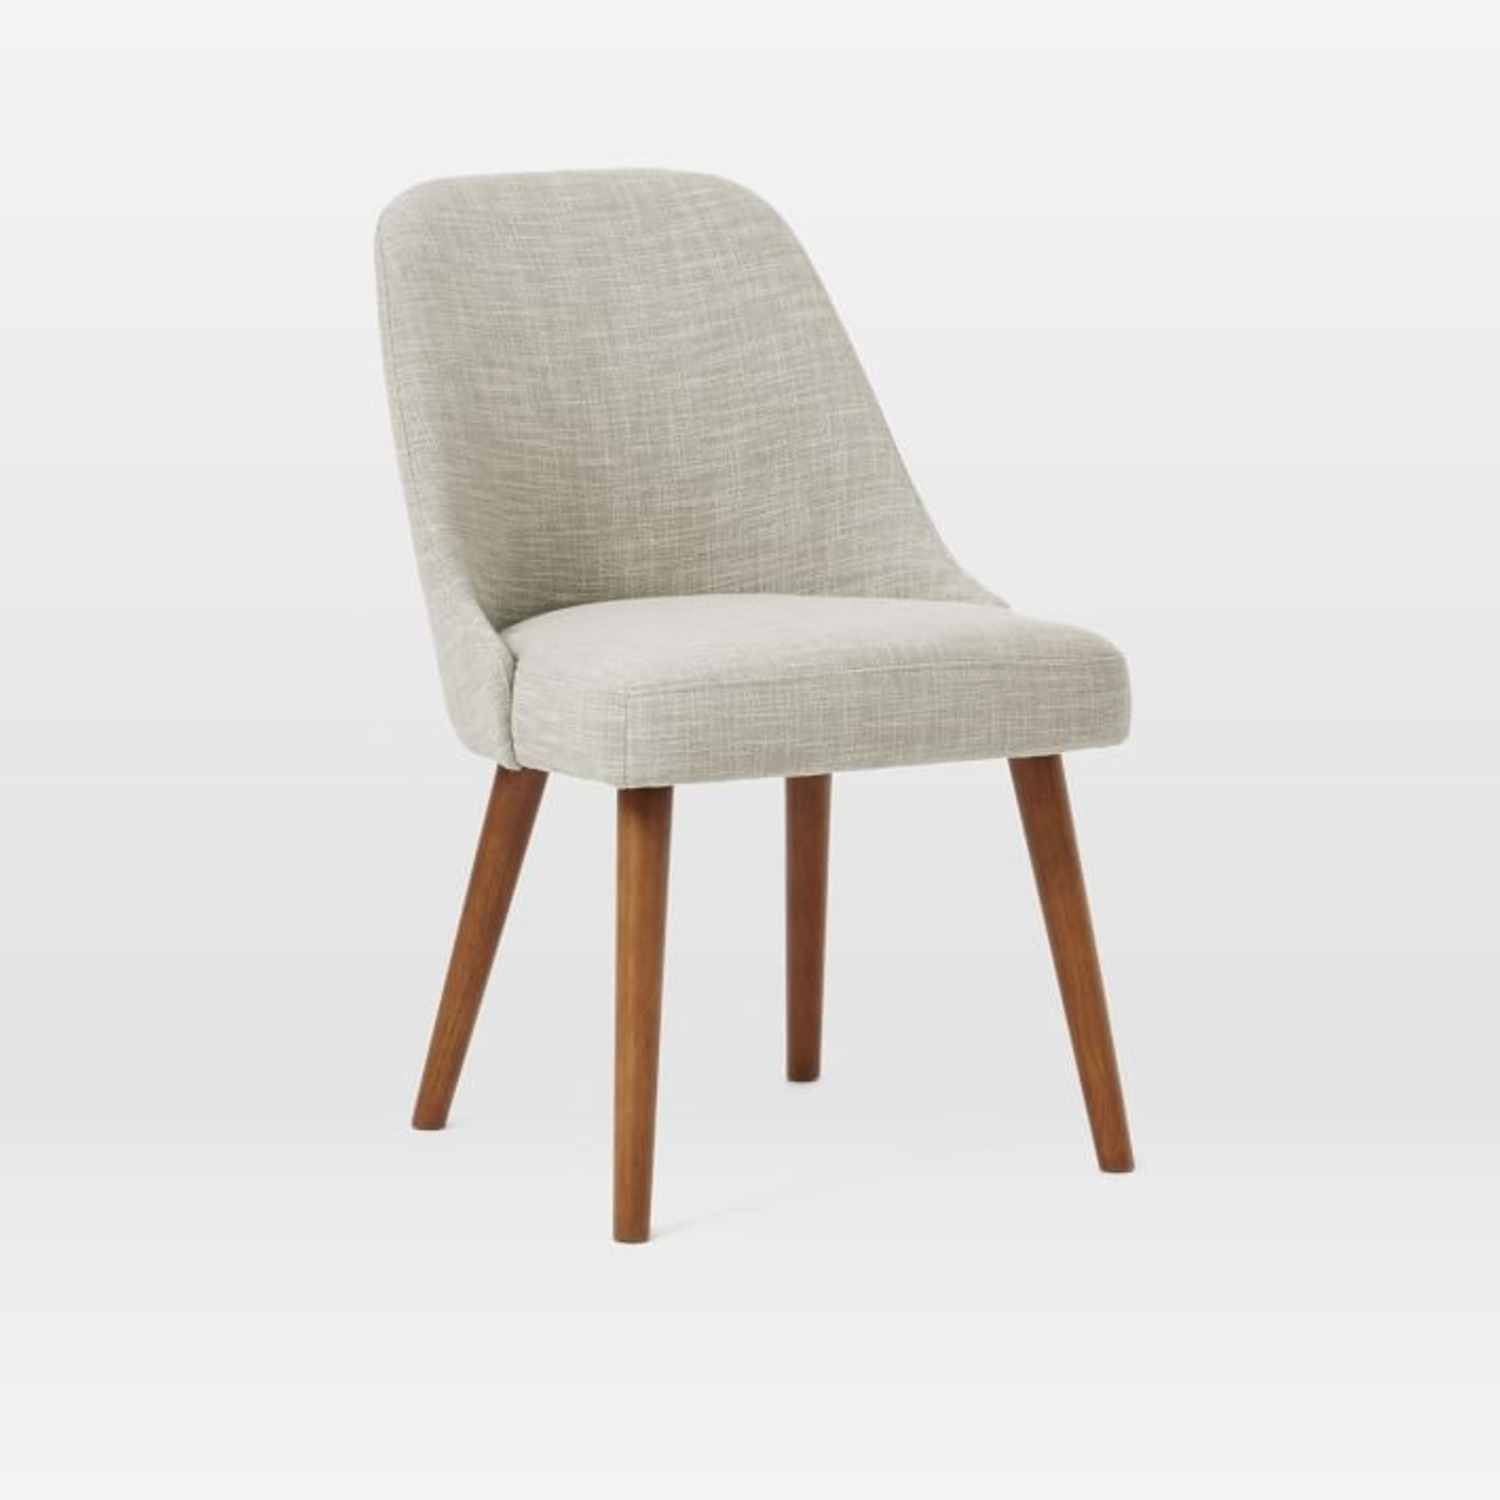 West Elm Mid-Century Upholstered Dining Chair - image-1